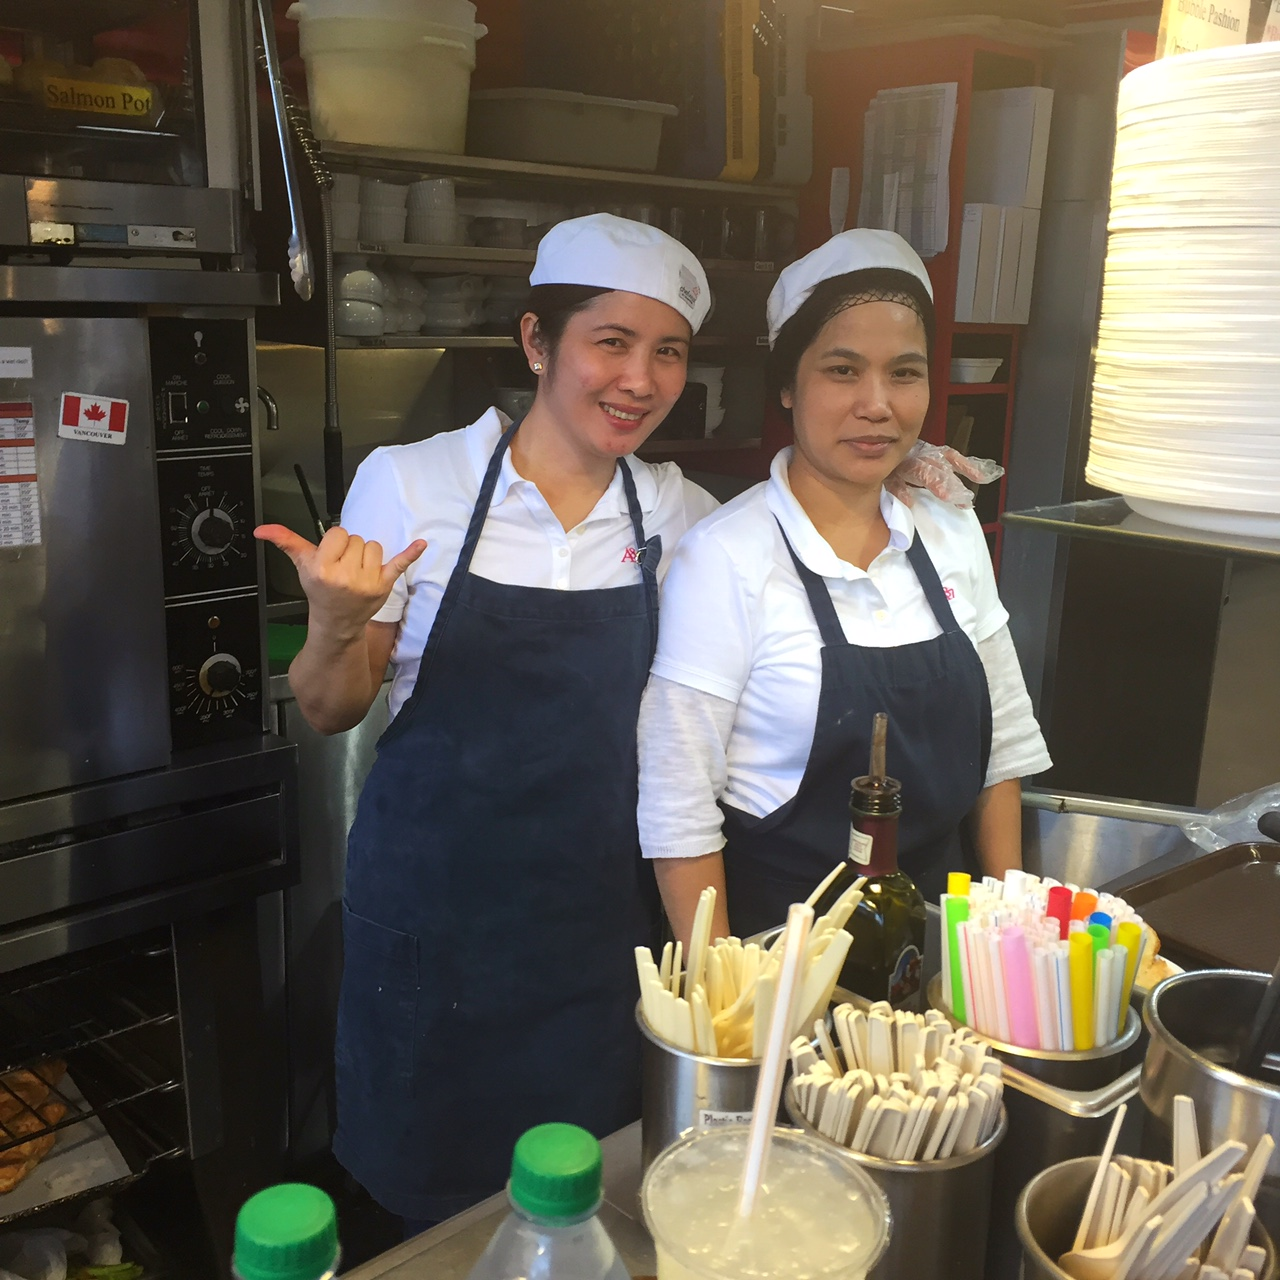 Look who I bumped into. Two charming Filipina ladies serving the most delicious clam chowders I've ever had.